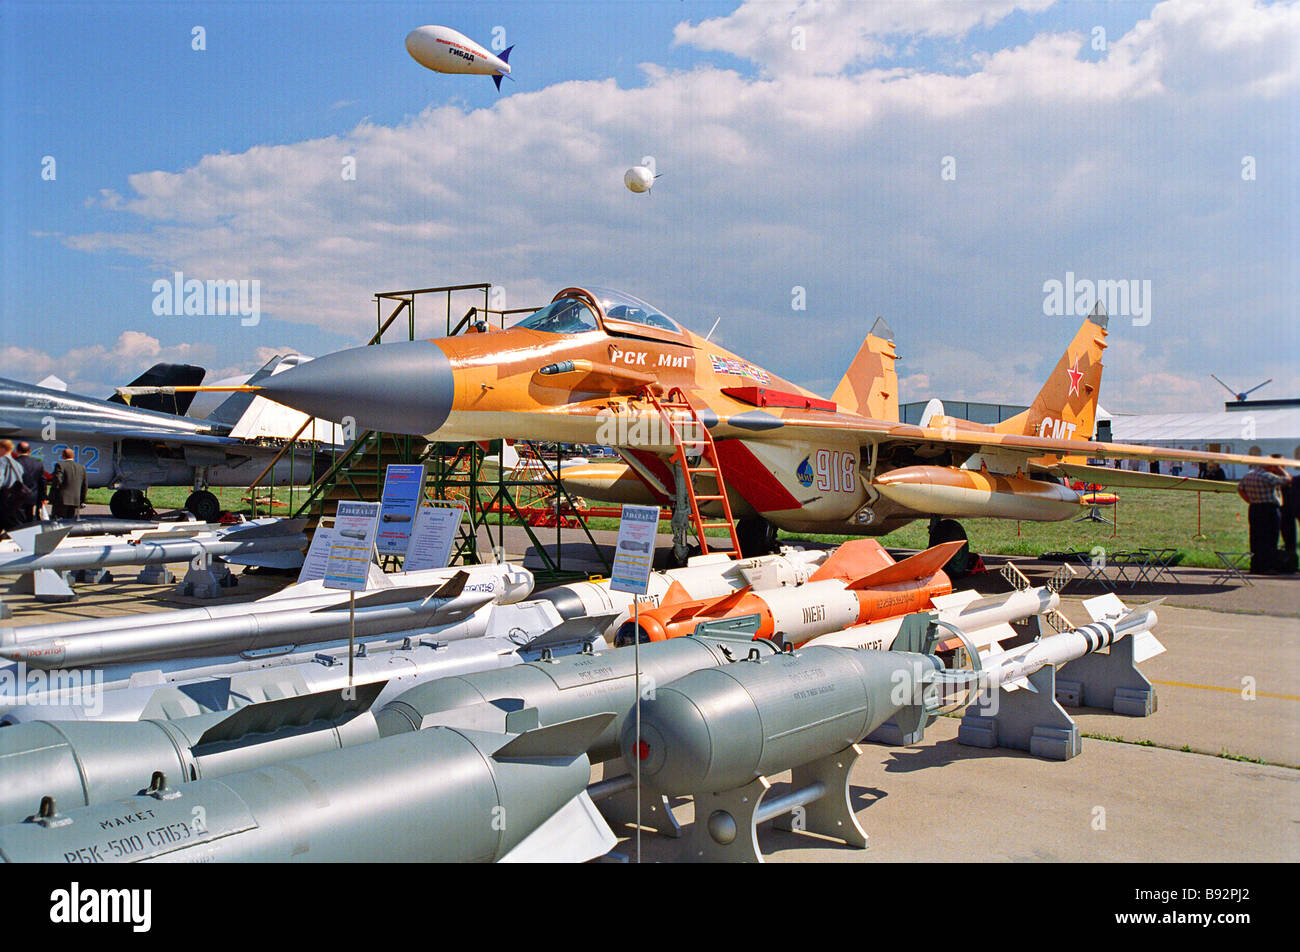 A MIG 29CMT multirole fighter of Russian design and manufacture at the 6th international aerospace show MAKS 2003 - Stock Image